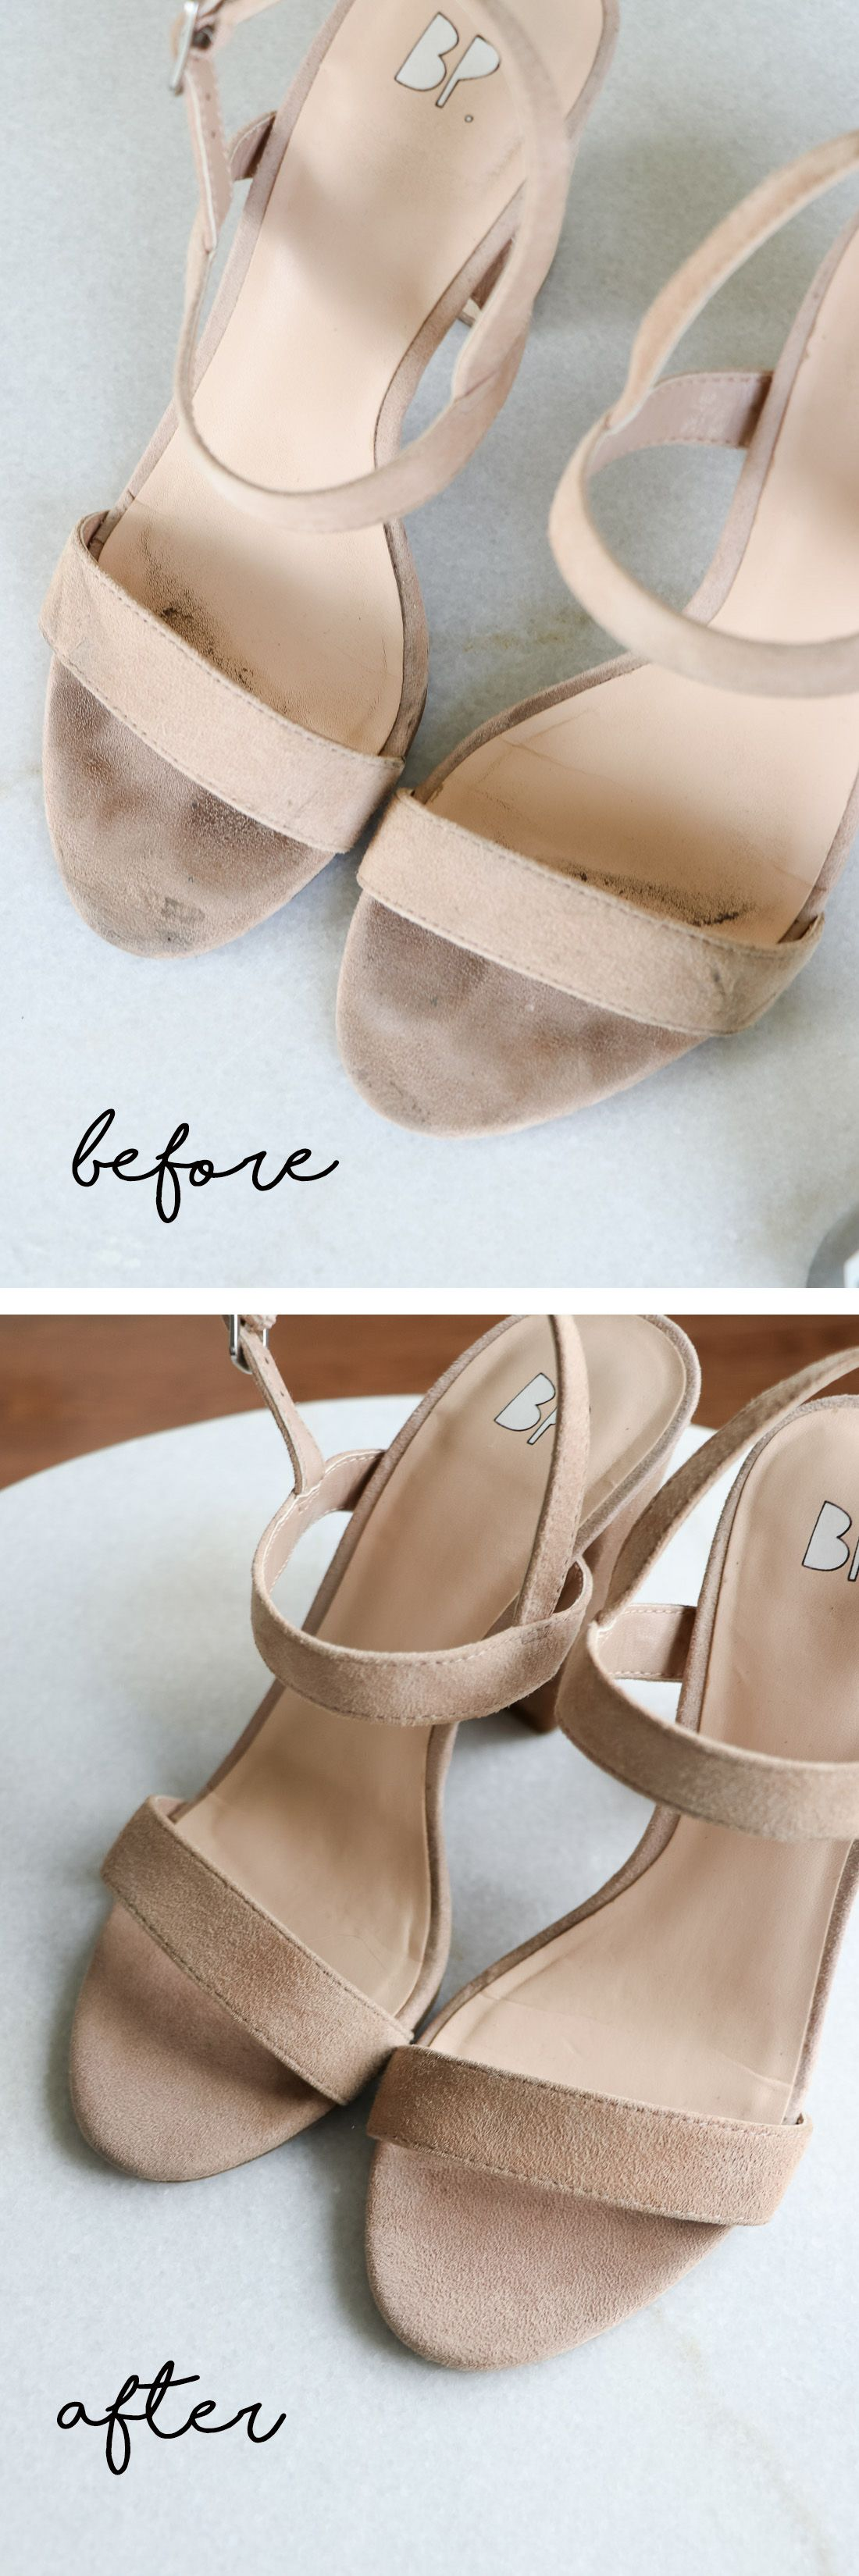 bb37853b38d How to clean suede shoes.  shoes  womensfashion  cleaning  cleaninghacks